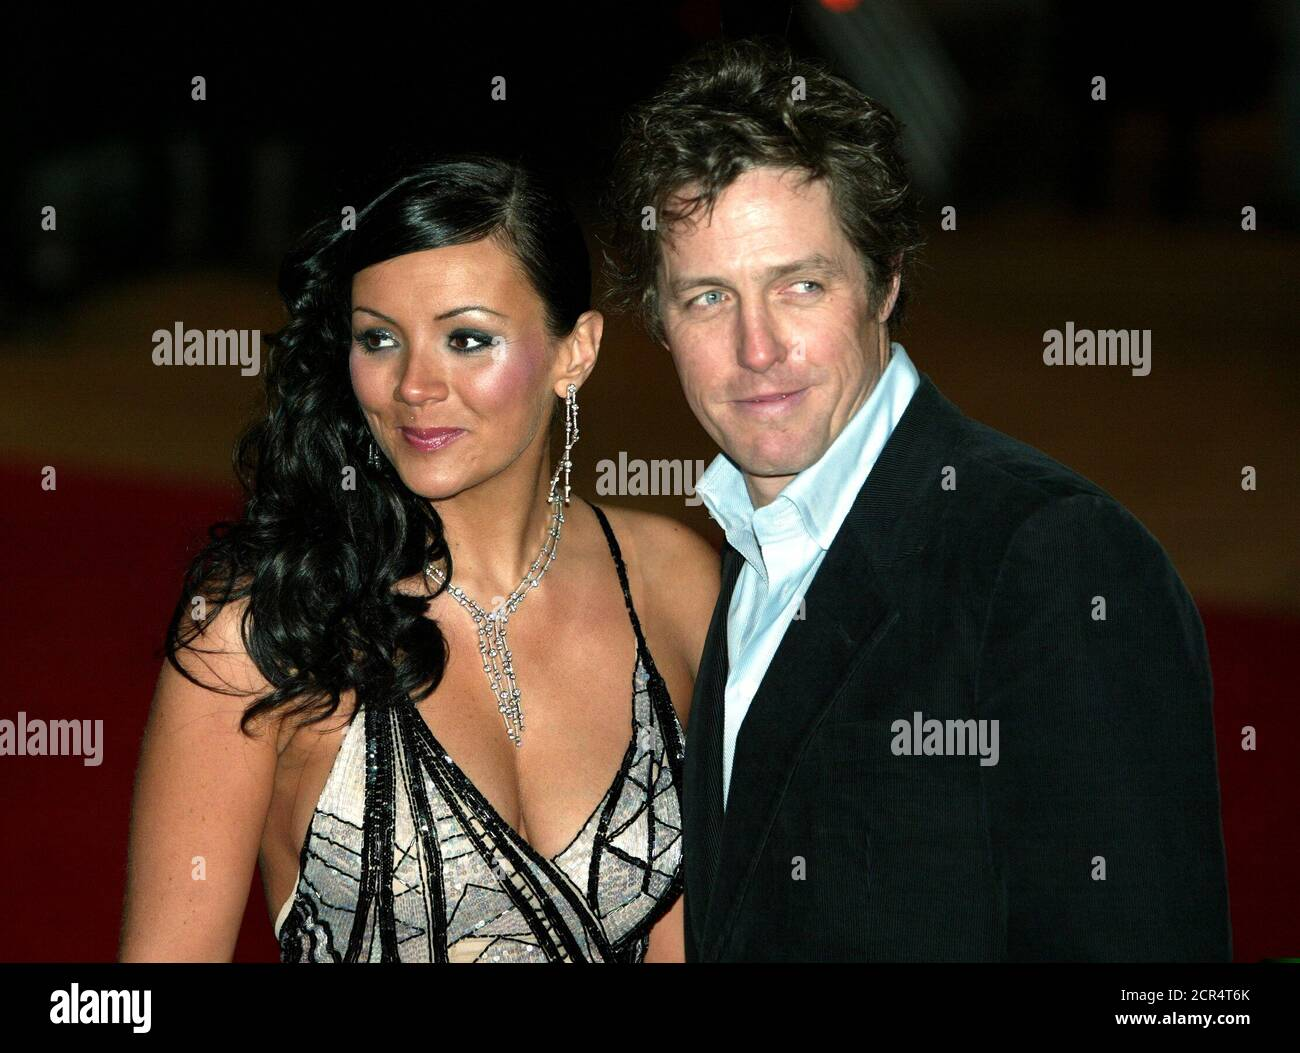 Martine Mccutcheon Hugh Grant Arrive High Resolution Stock Photography And Images Alamy